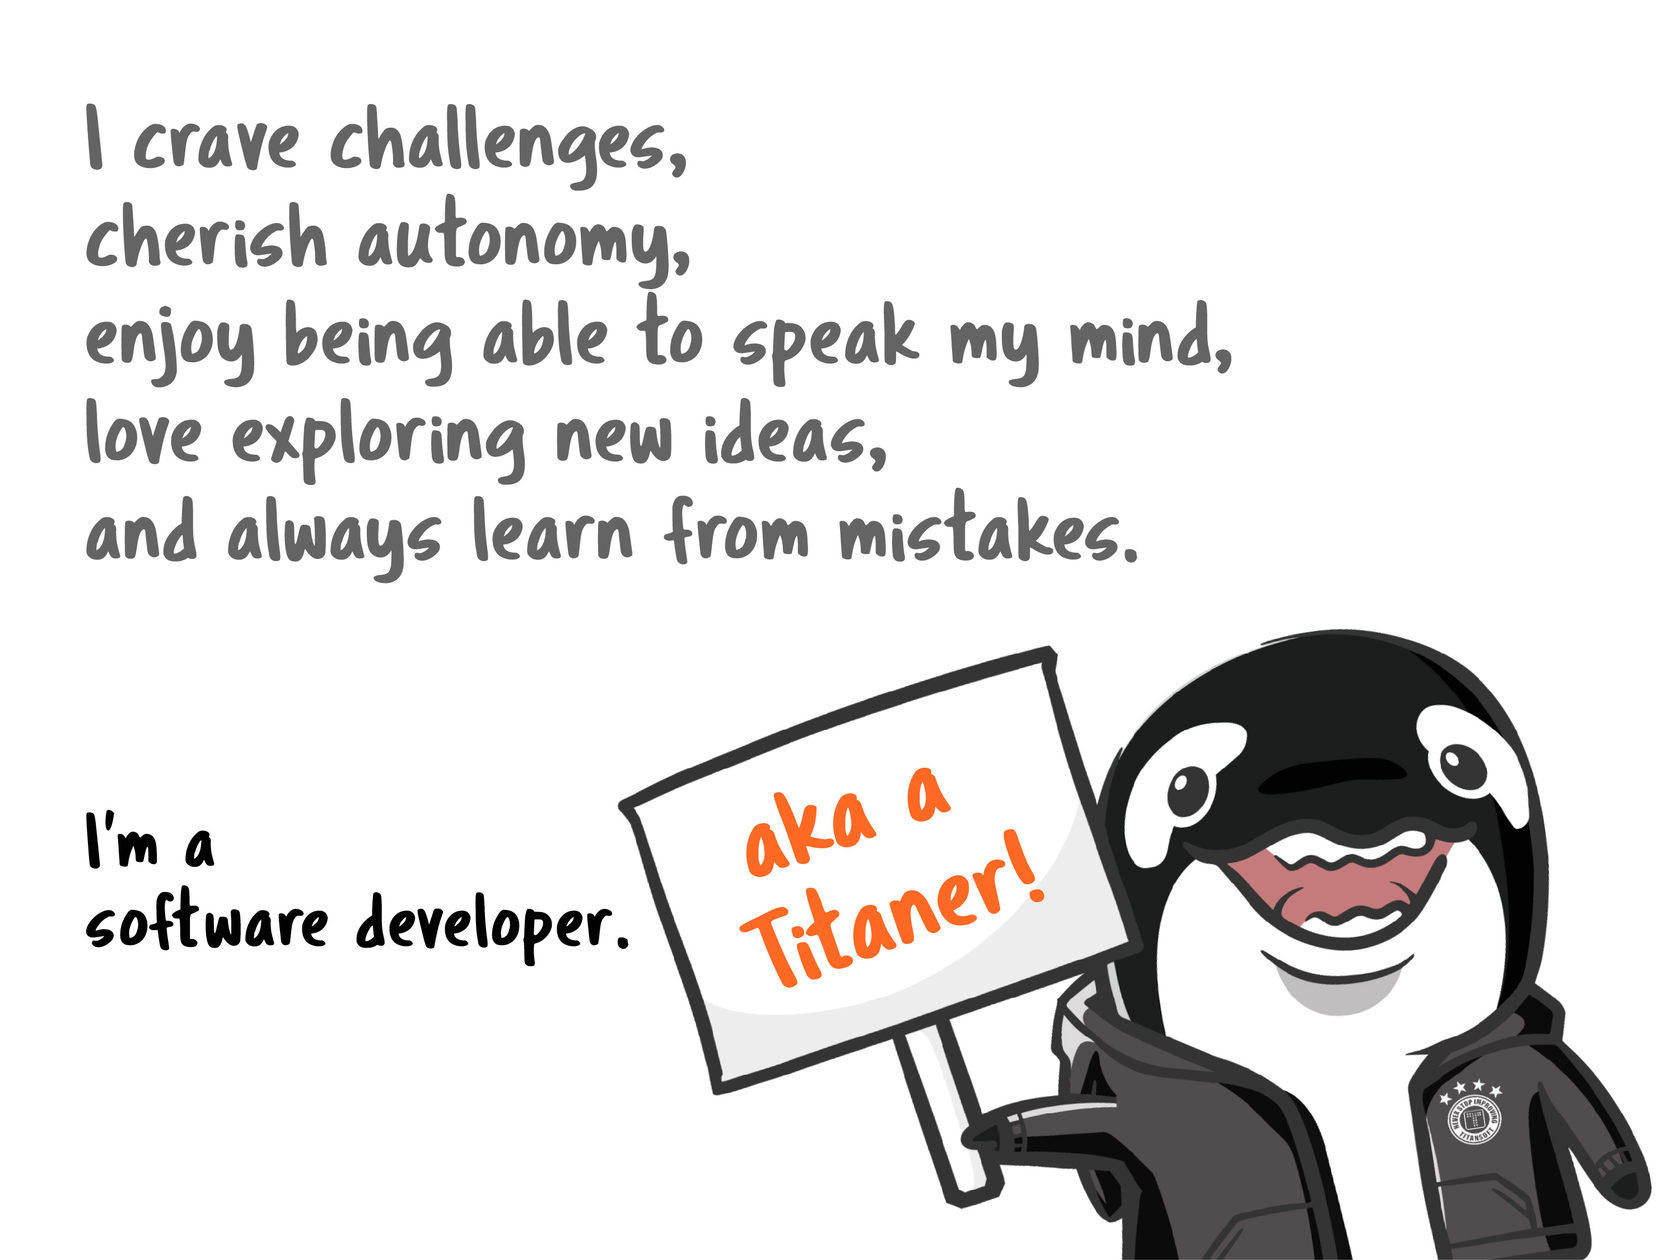 I crave challenges, cherish autonomy, enjoy being able to speak my mind, love exploring new ideas, and always learn from mistakes. I'm a software developer at Titansoft Pte Ltd, aka a Titaner!